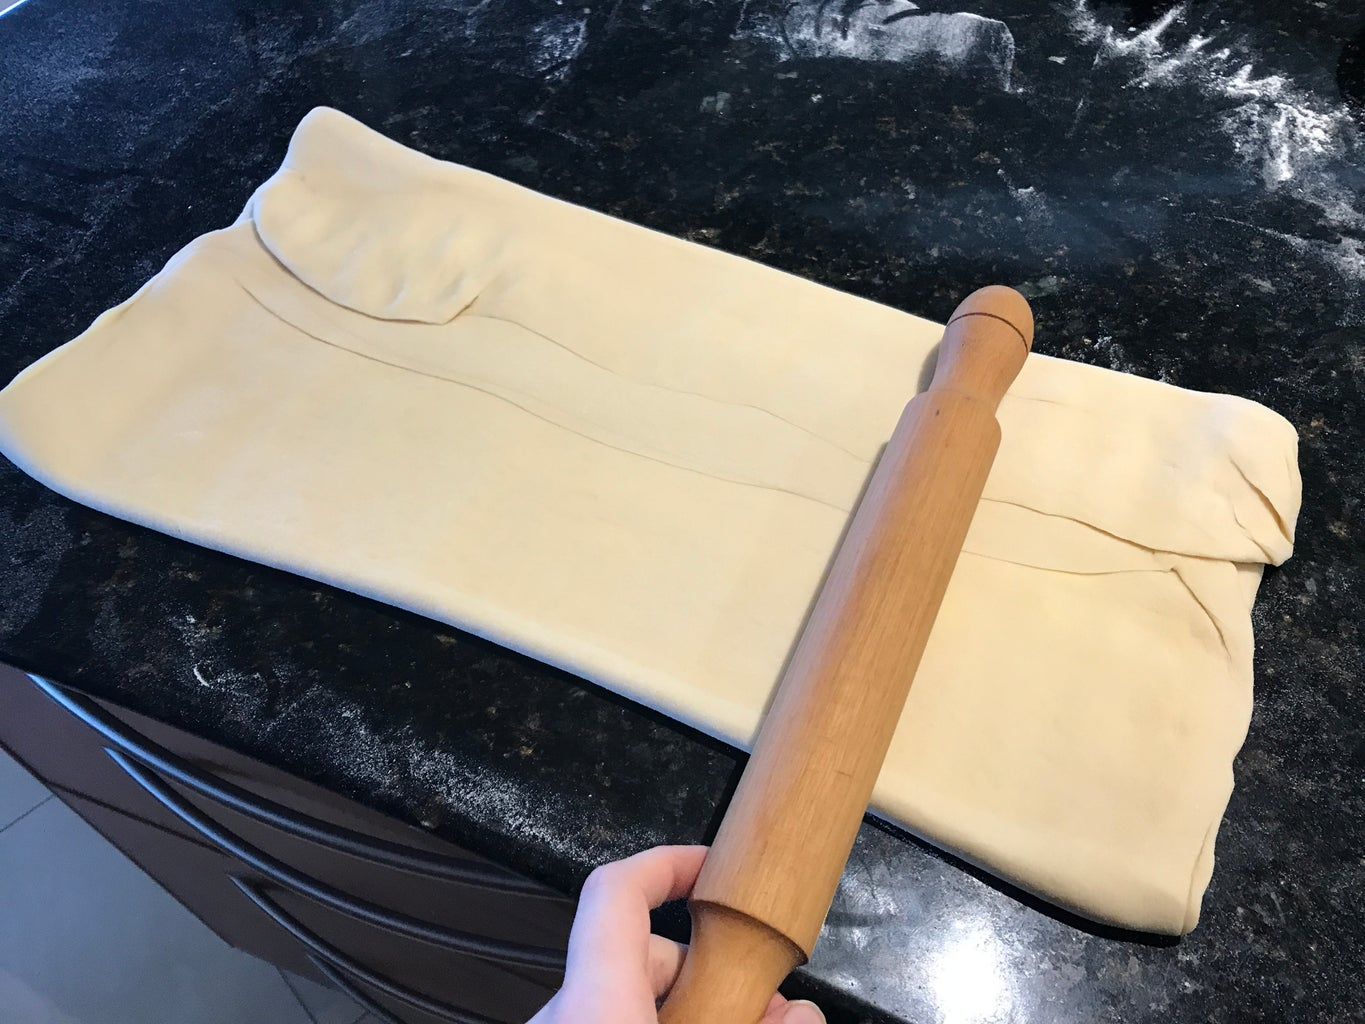 Make the 1st Fold in the Pastry Dough